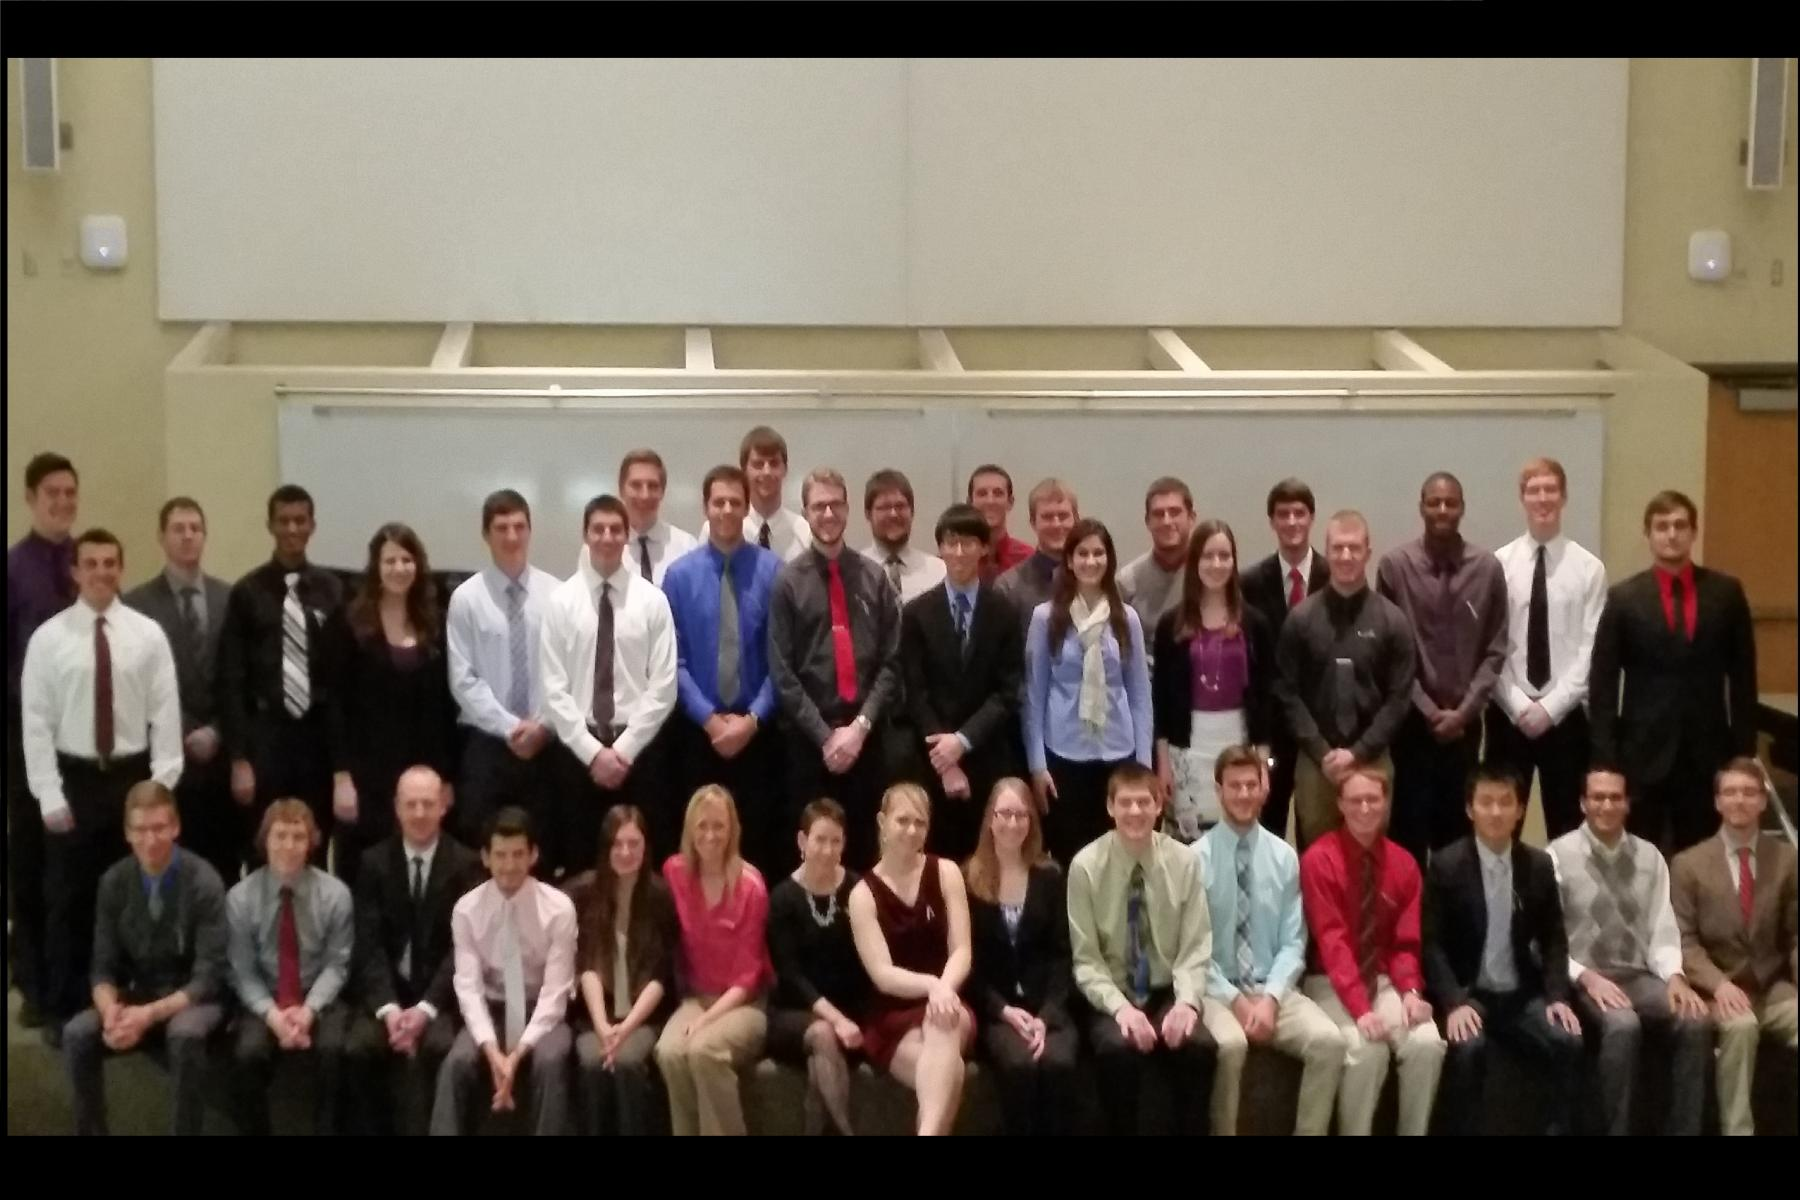 Image of the 2013 Nebraska Tau Beta Pi Initiate Class